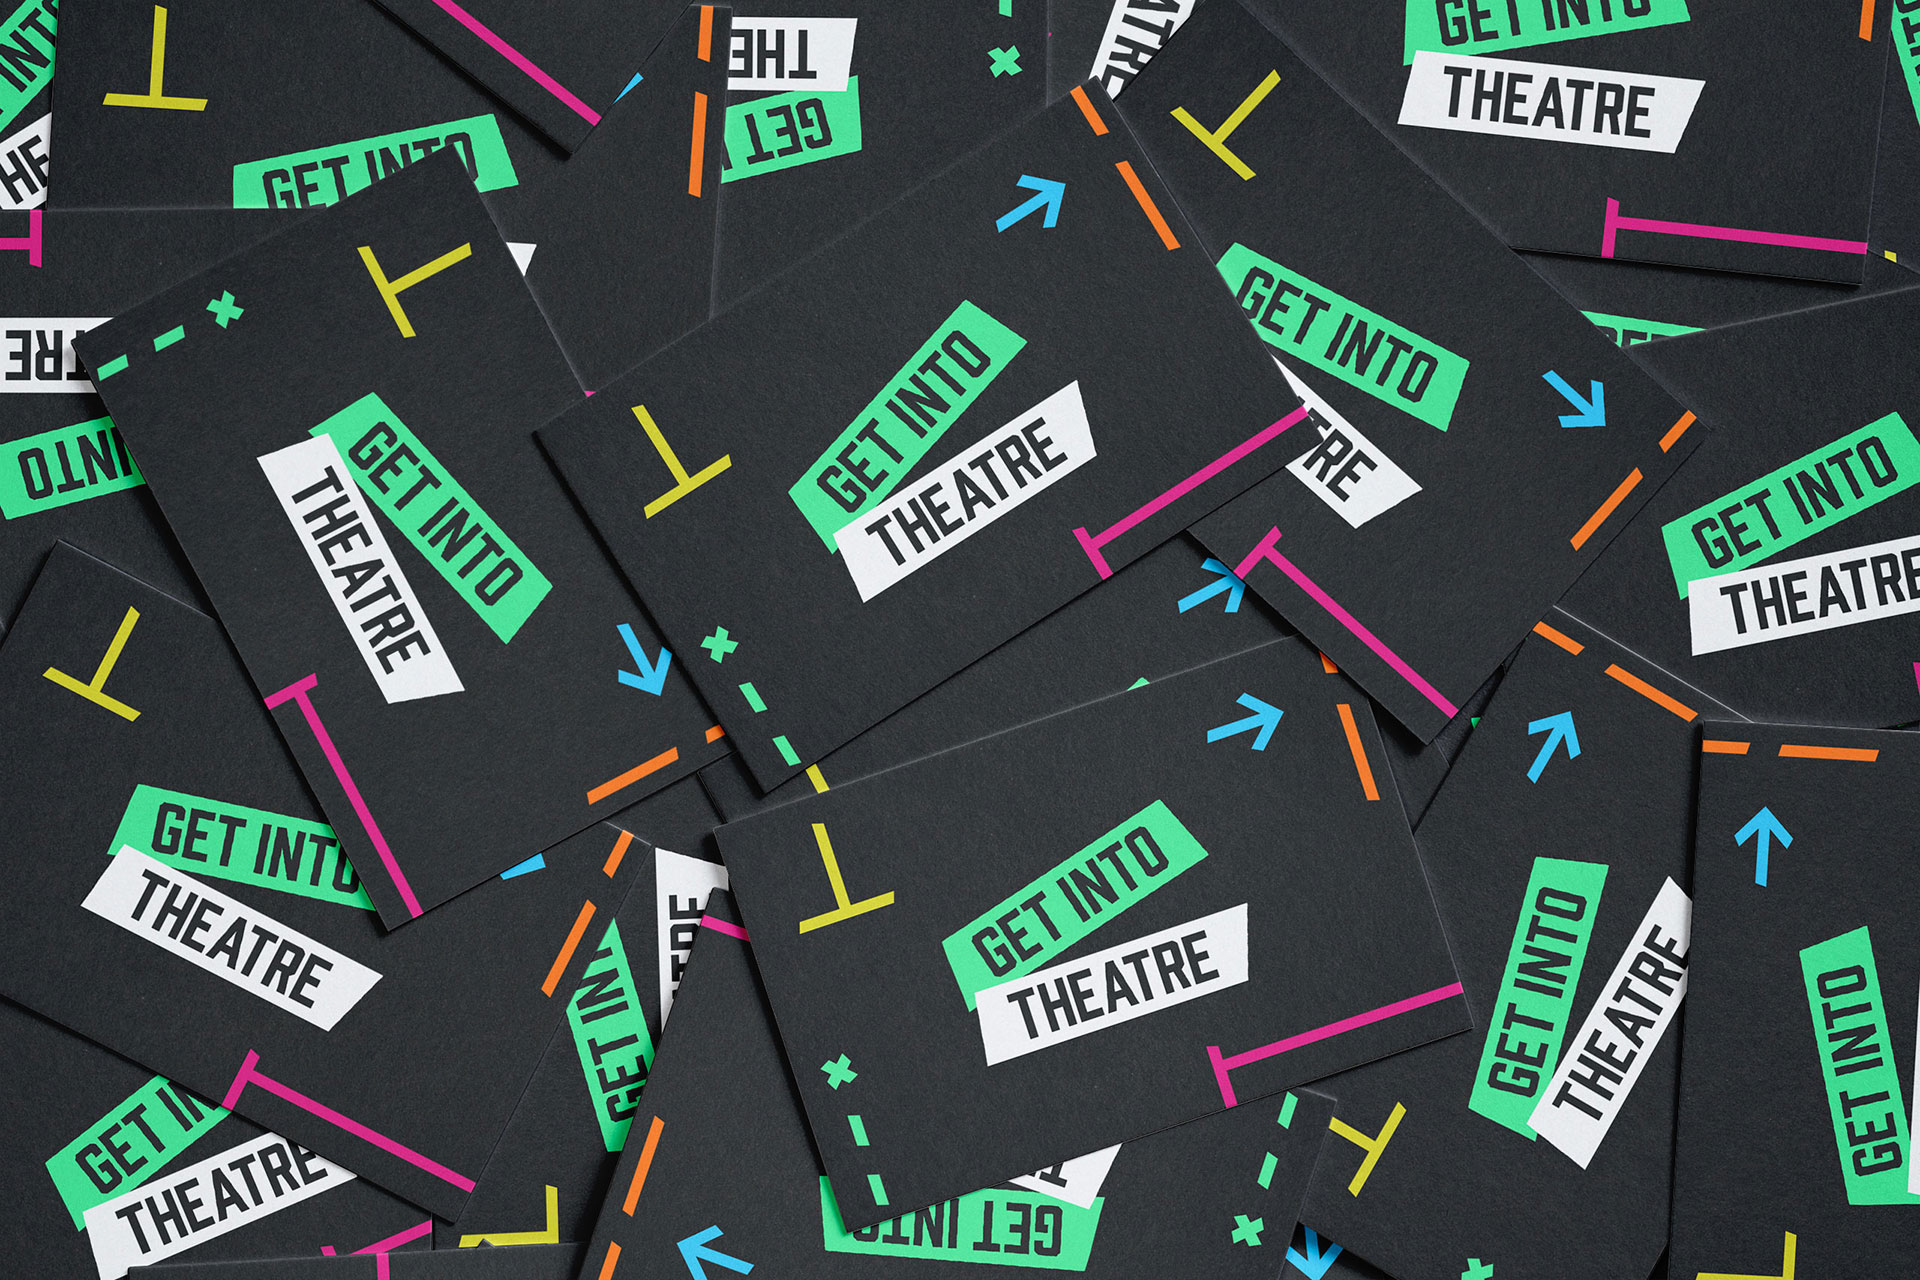 Get Into Theatre Business Cards